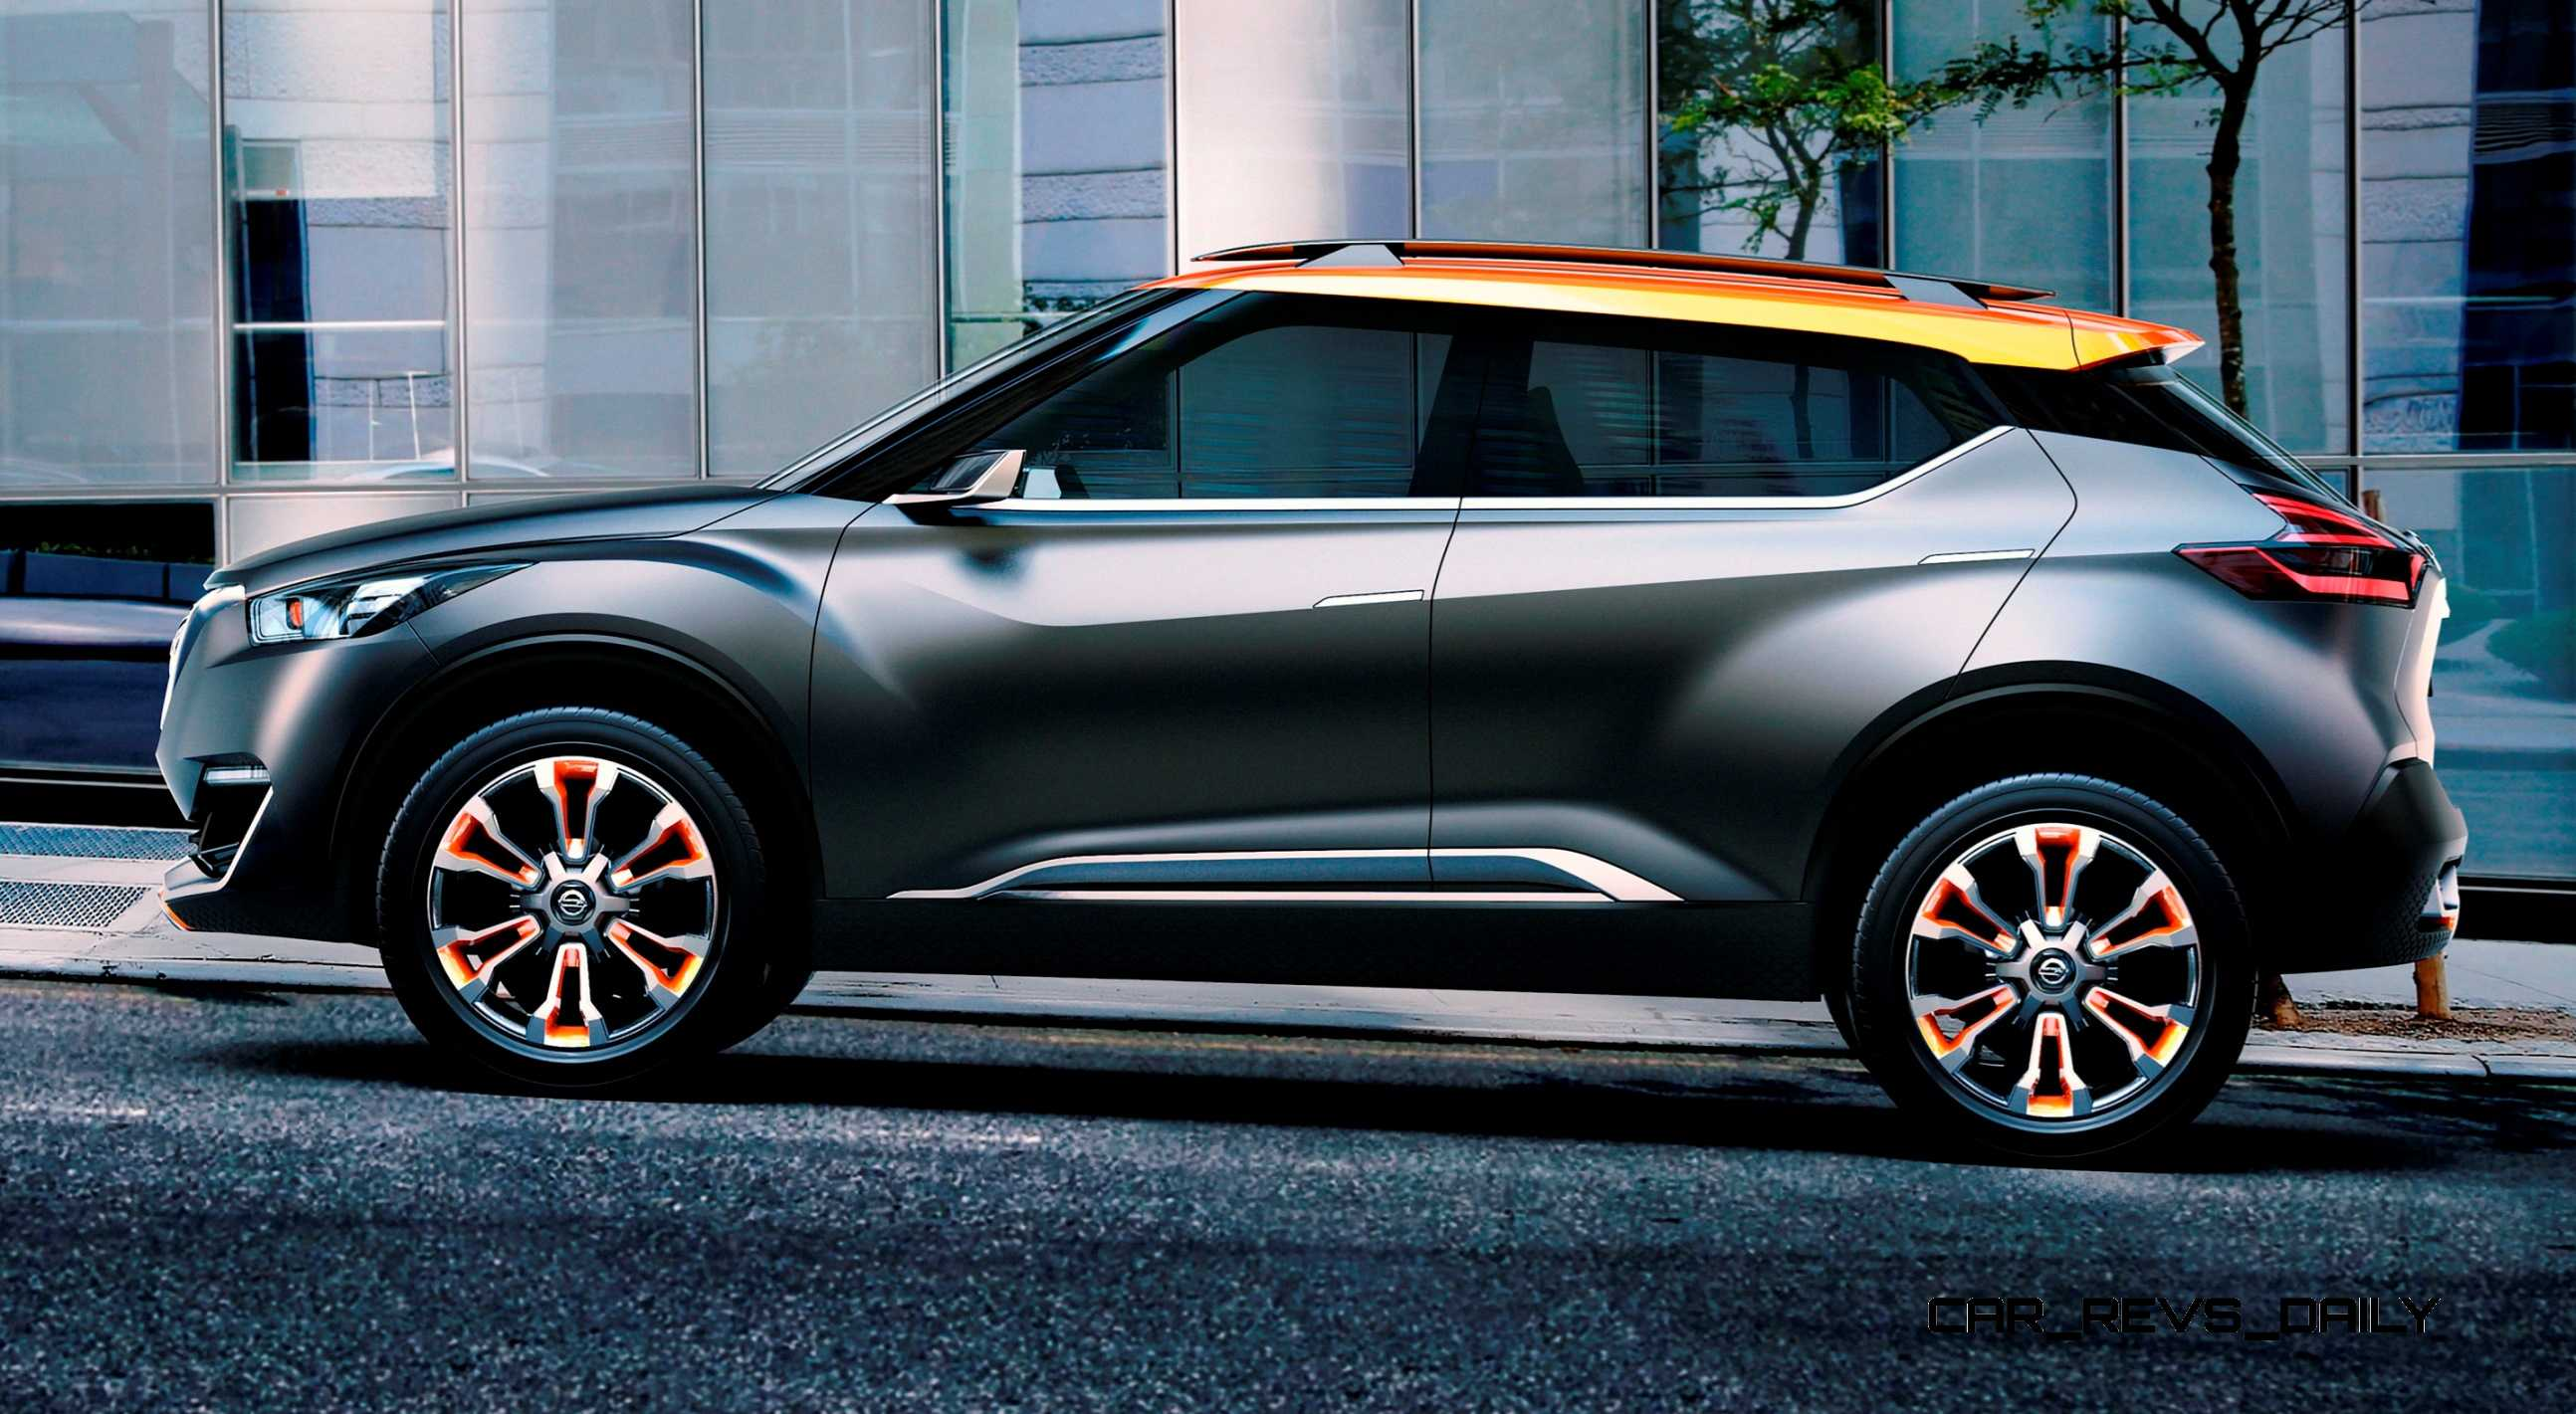 Off Road Design >> 2014 Nissan Kicks Concept Is New Sao Paolo Off-Road Crossover